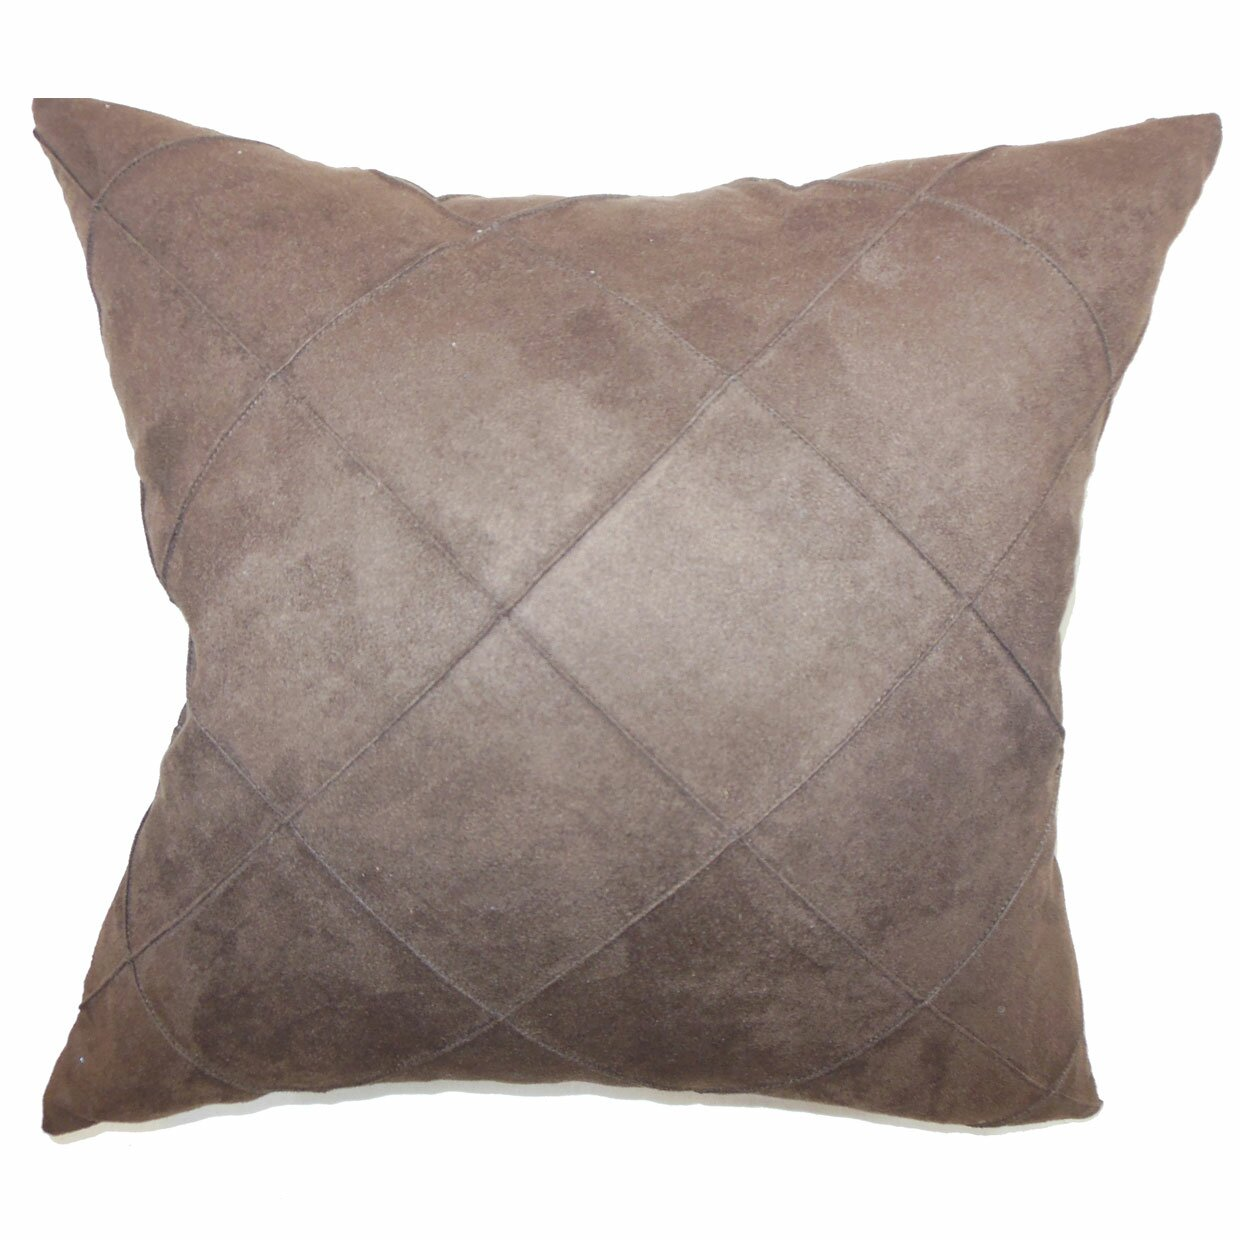 The Pillow Collection Nesbitt Plain Faux Suede Throw Pillow & Reviews Wayfair